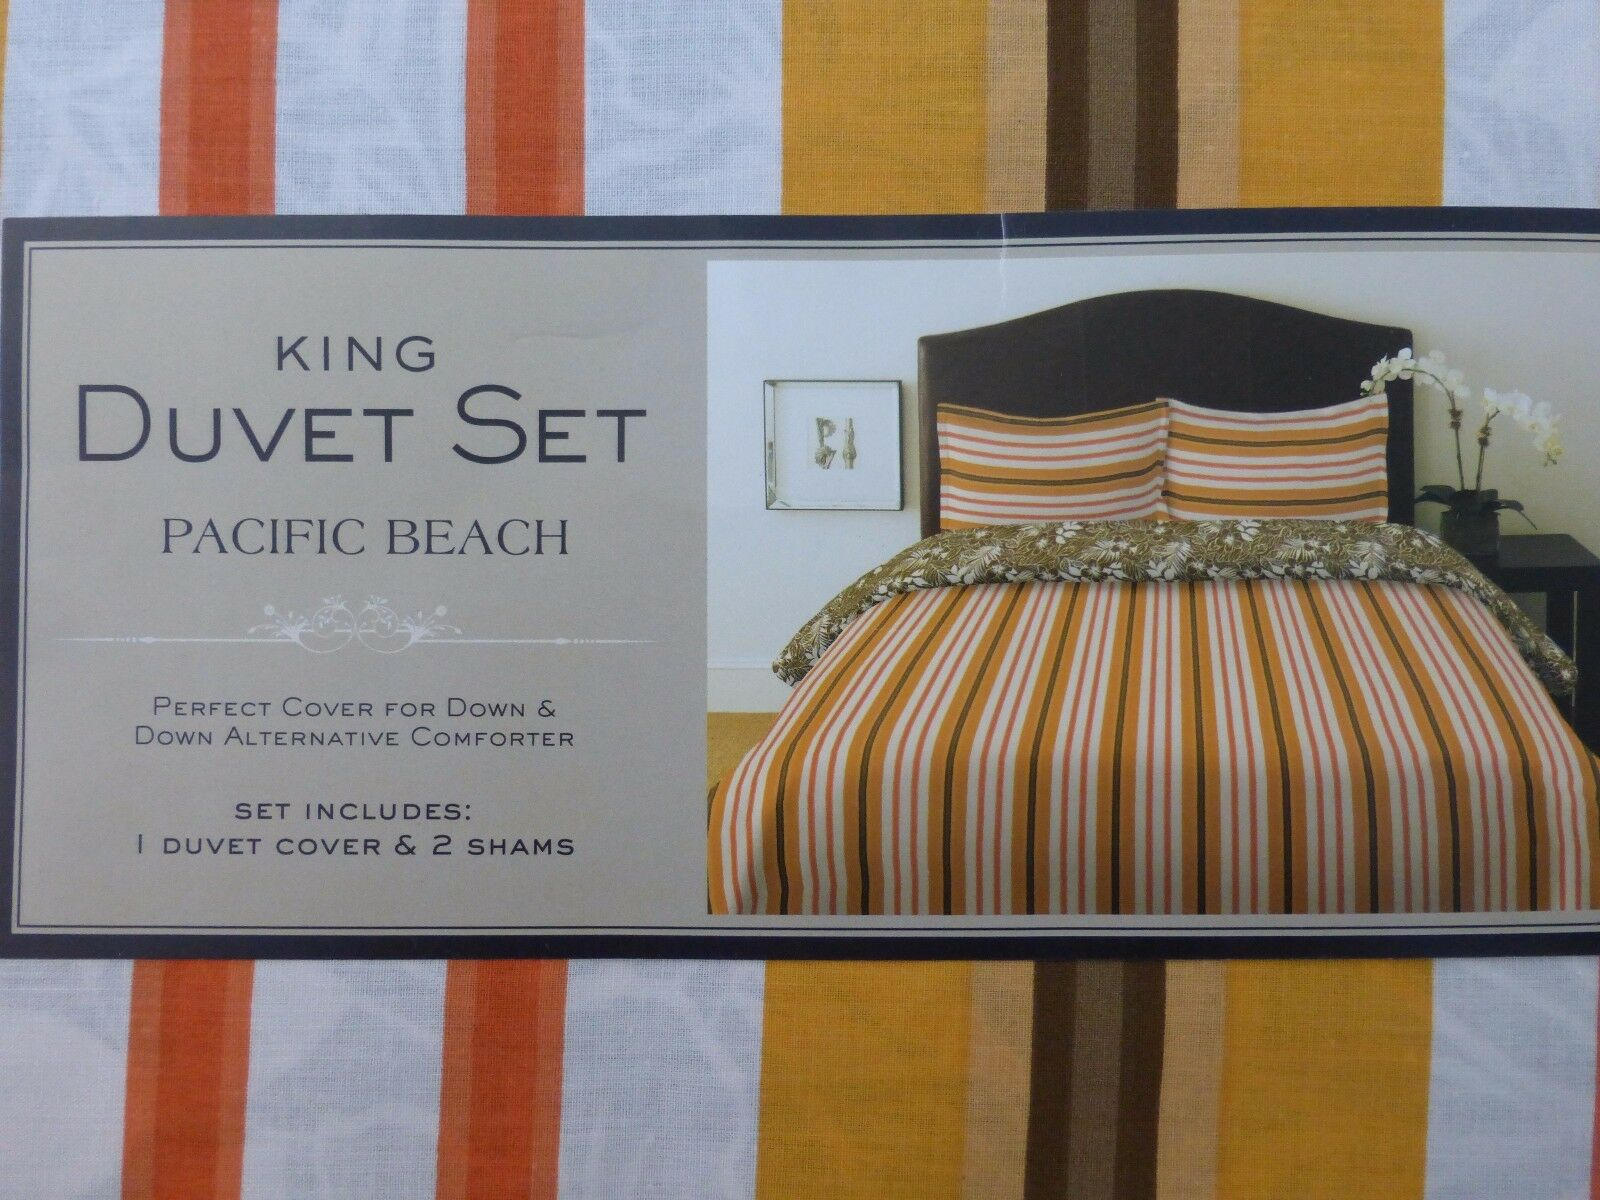 Vintage Collage Pacific Teppich Pc Pacific Beach King Duvet Cover Set Nip 3 Shams Nosmwc2859